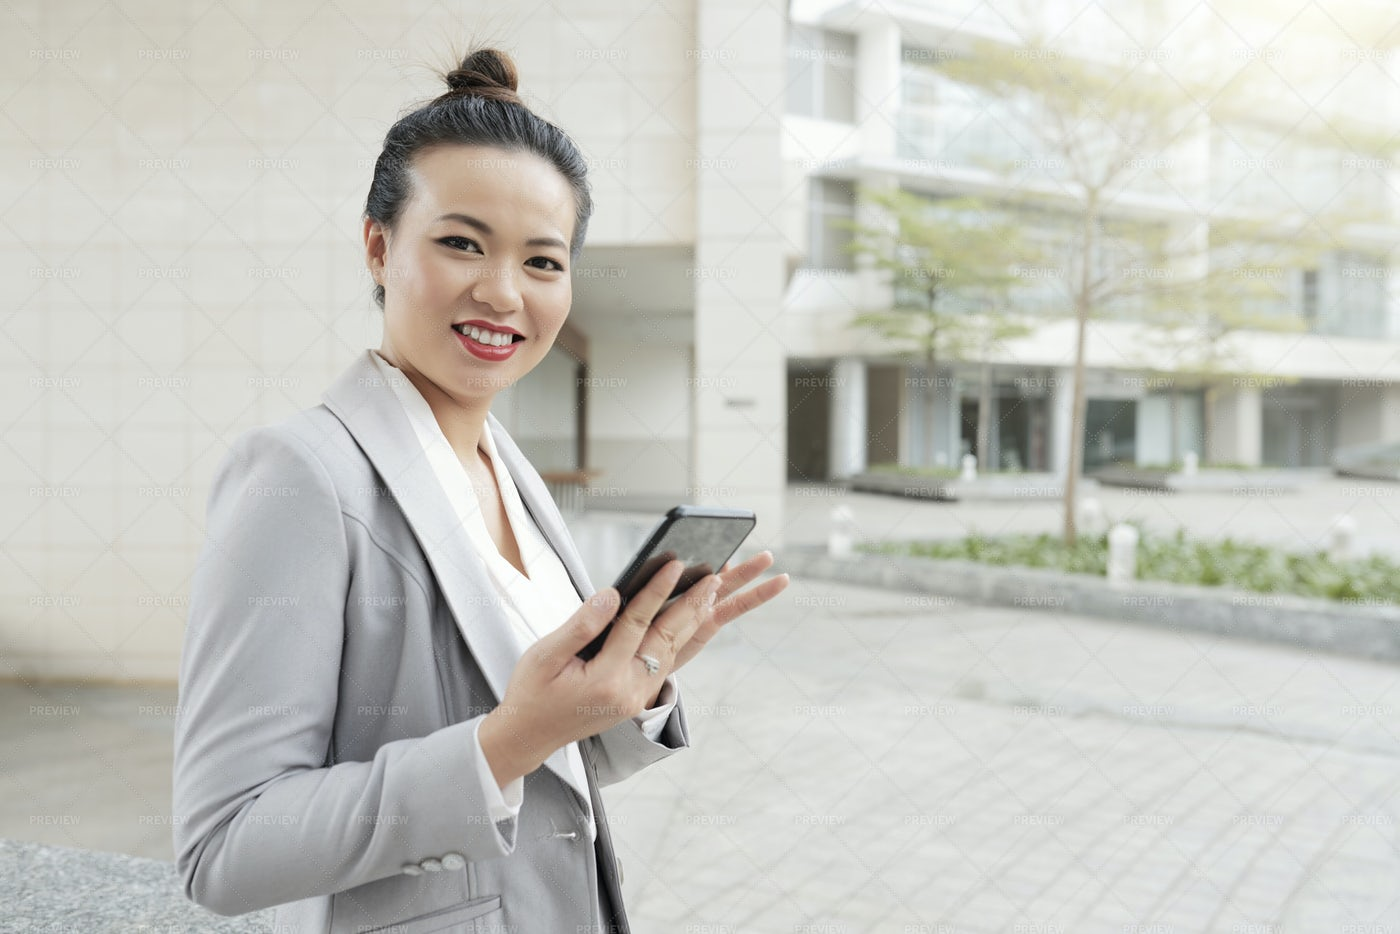 Businesswoman With Mobile Phone In The: Stock Photos